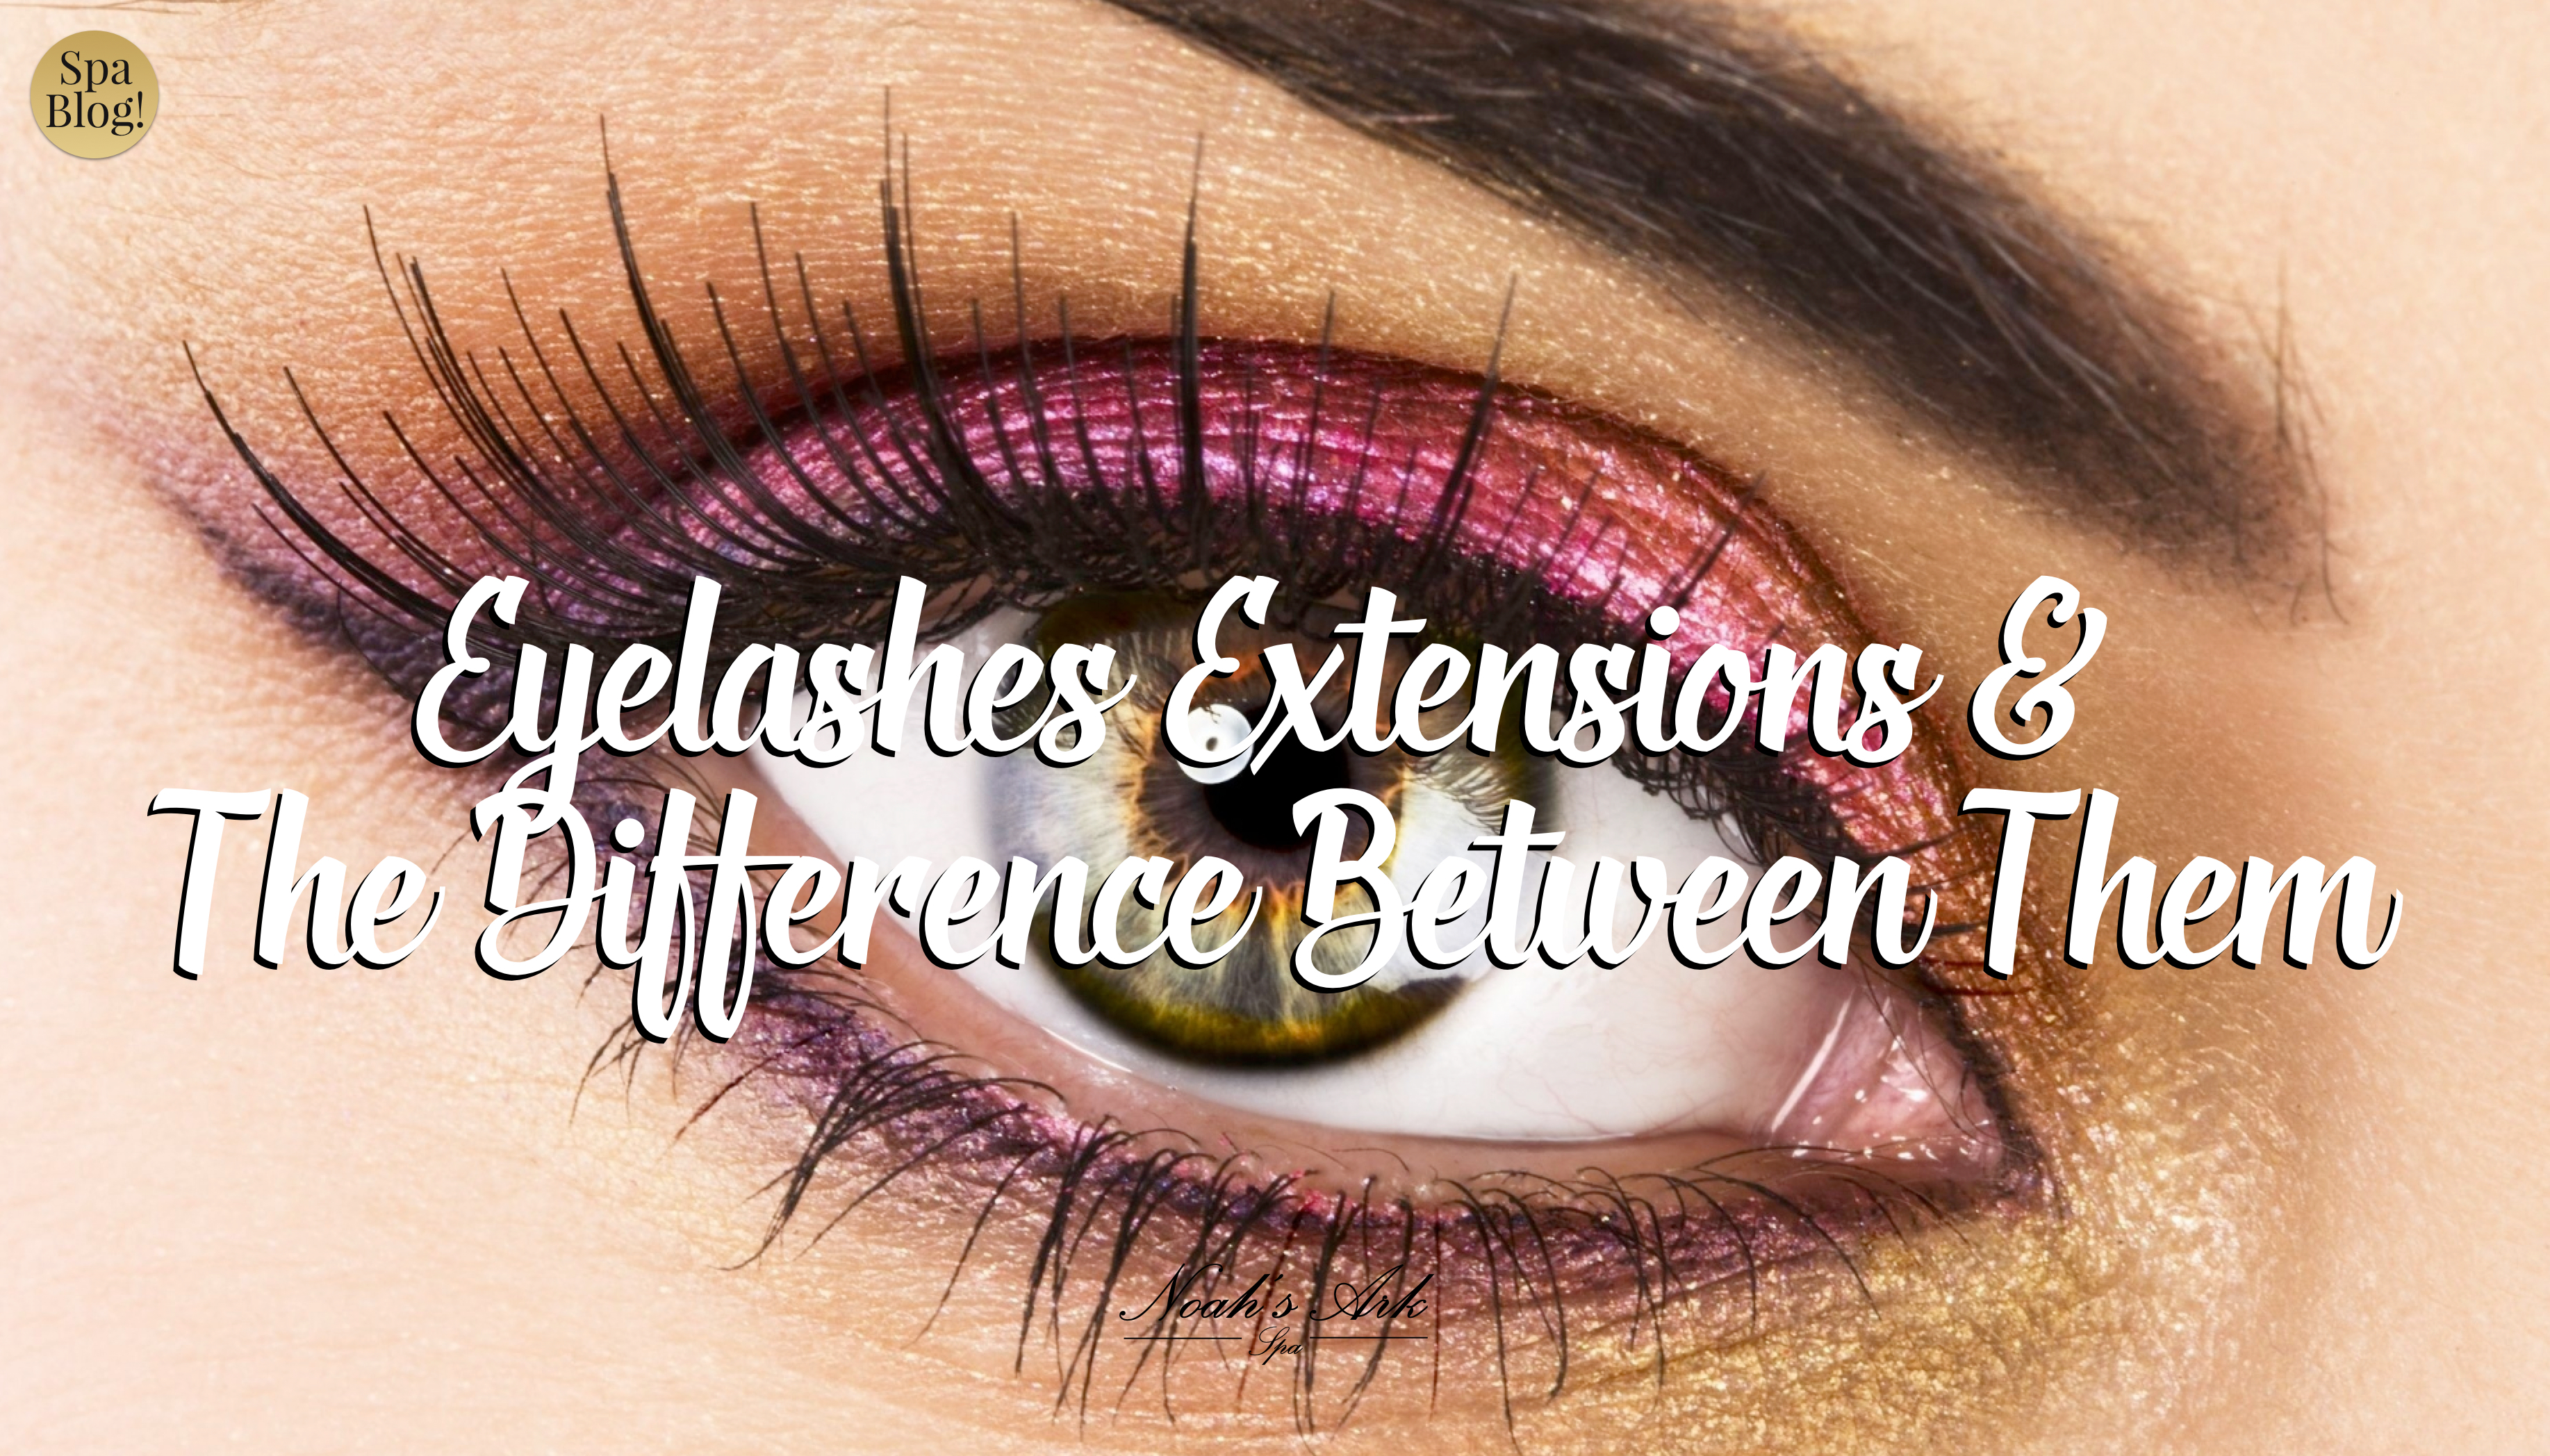 Eyelashes Extensions and The Difference Between Them